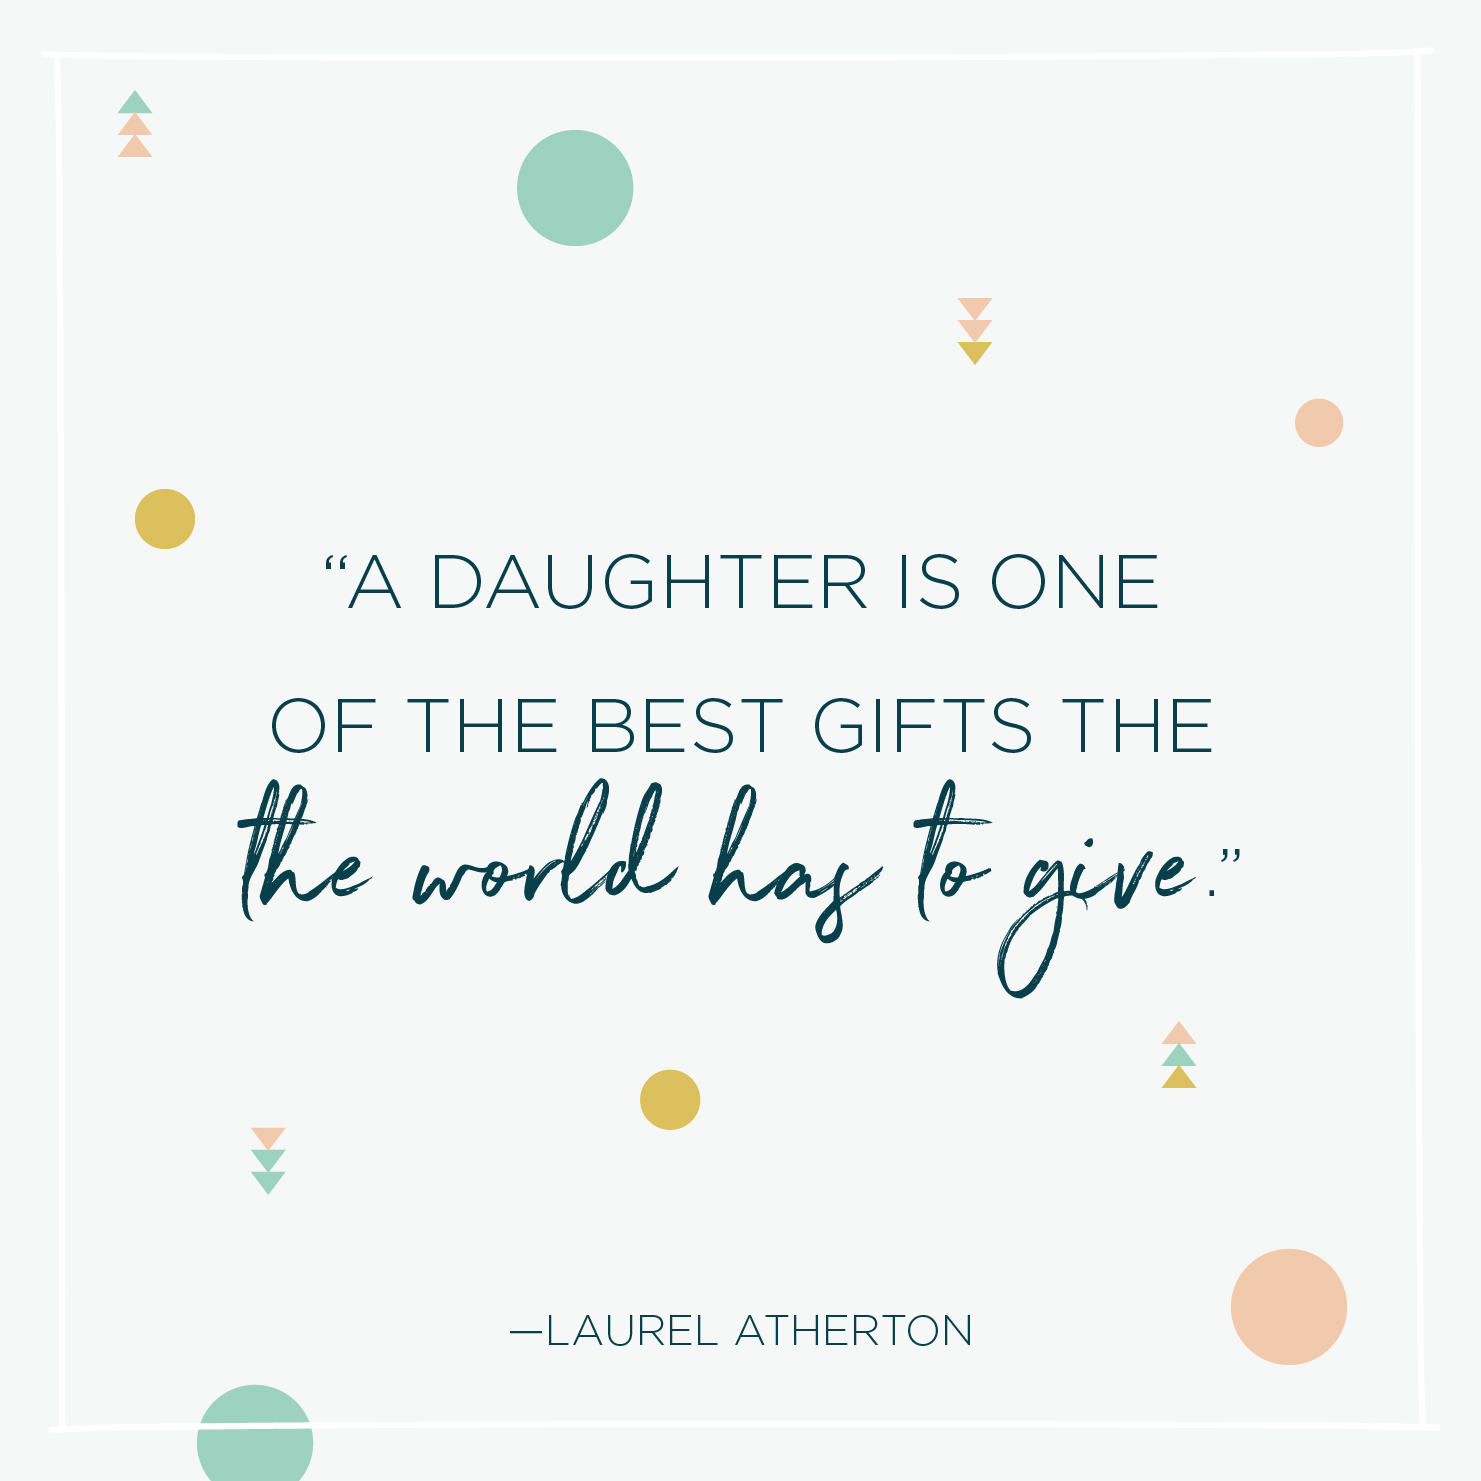 Quote above background image: 'A daughter is one of the best gifts this world has to give. - Laurel Atherton '